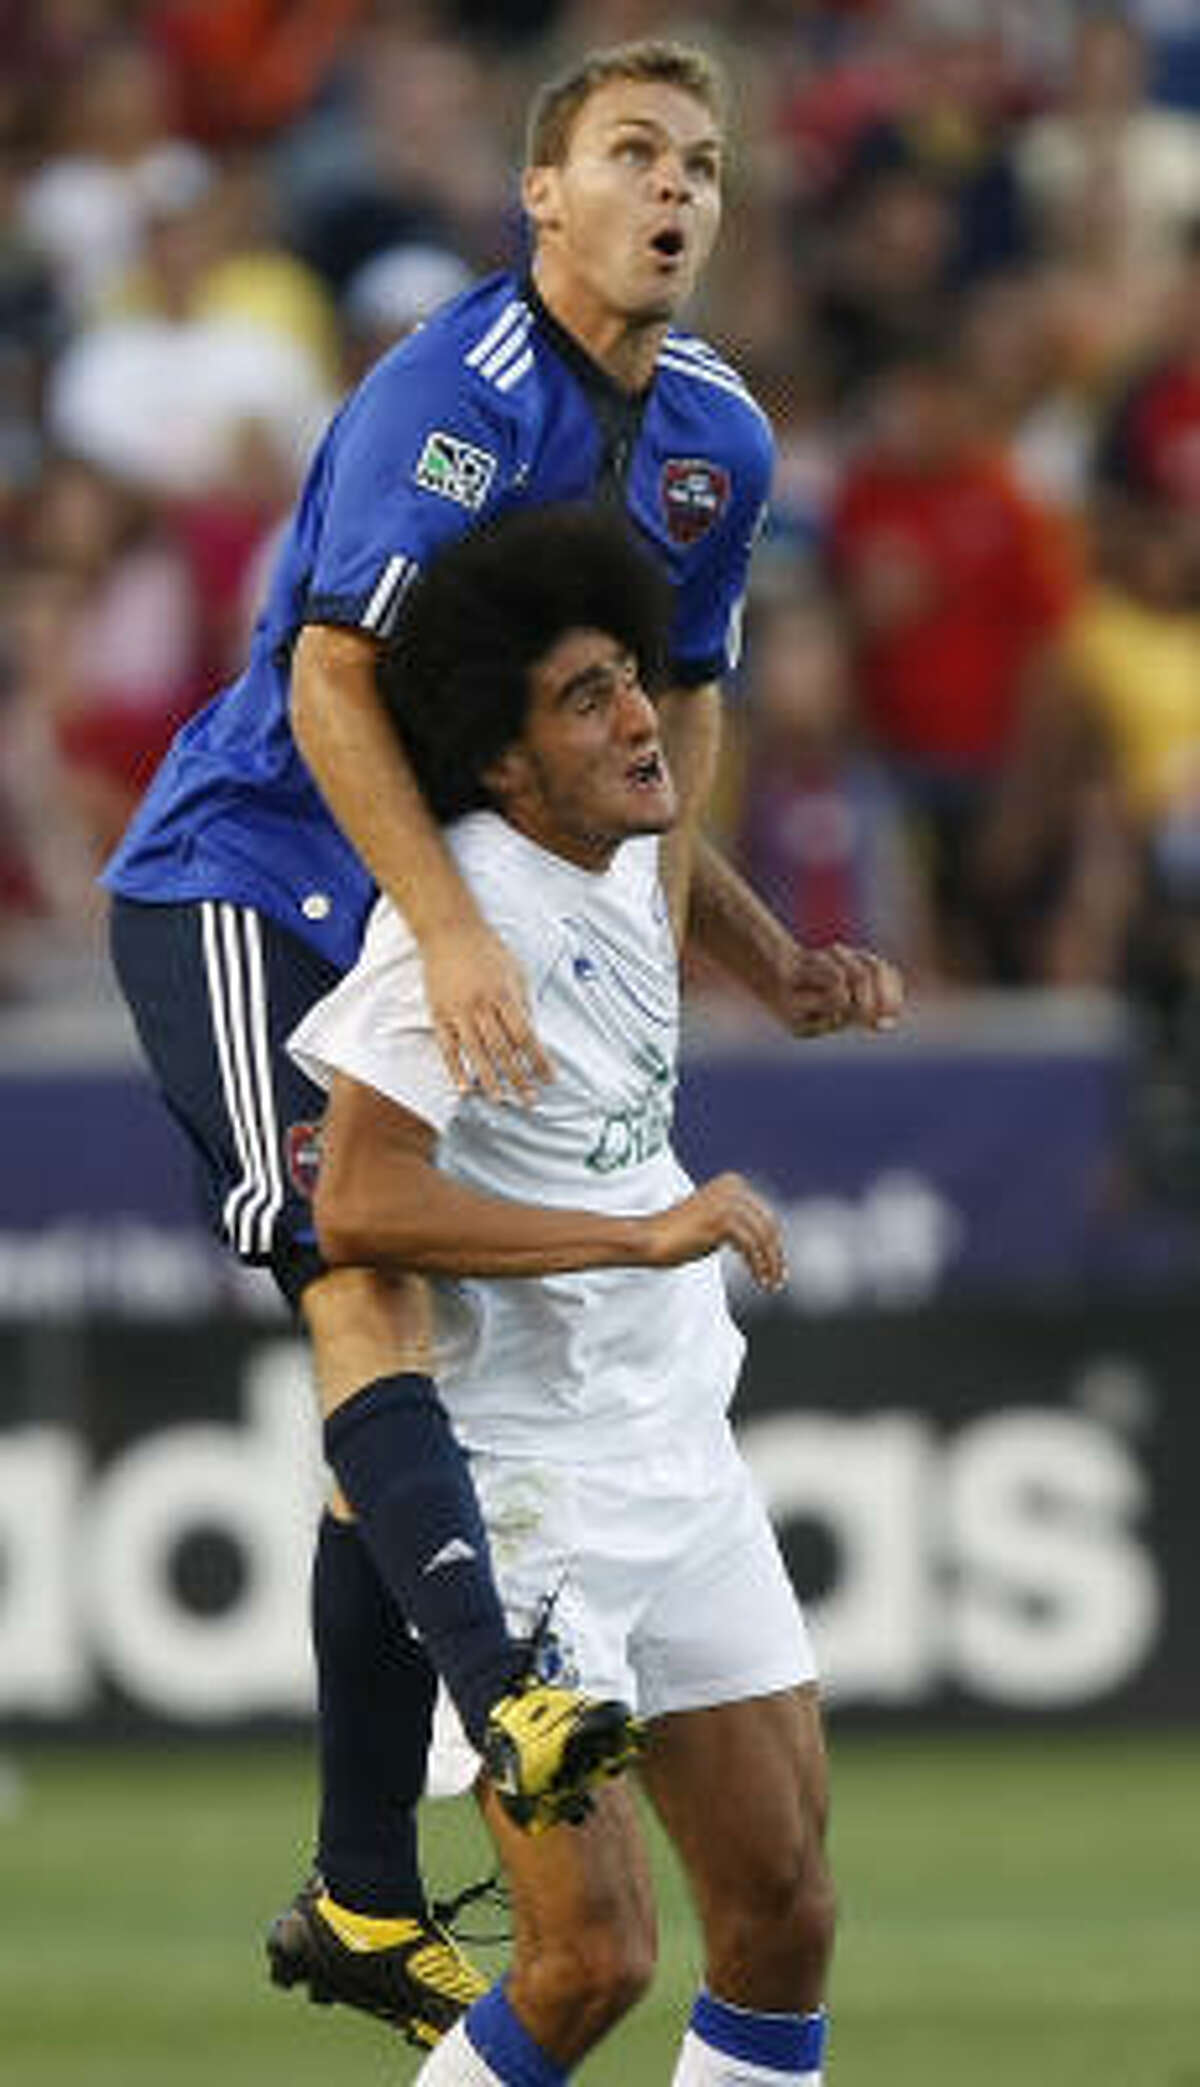 MLS All-Star and Dynamo defender Chad Marshall, left, climbs the back of Everton FC's Marouane Fellaini in the first half.